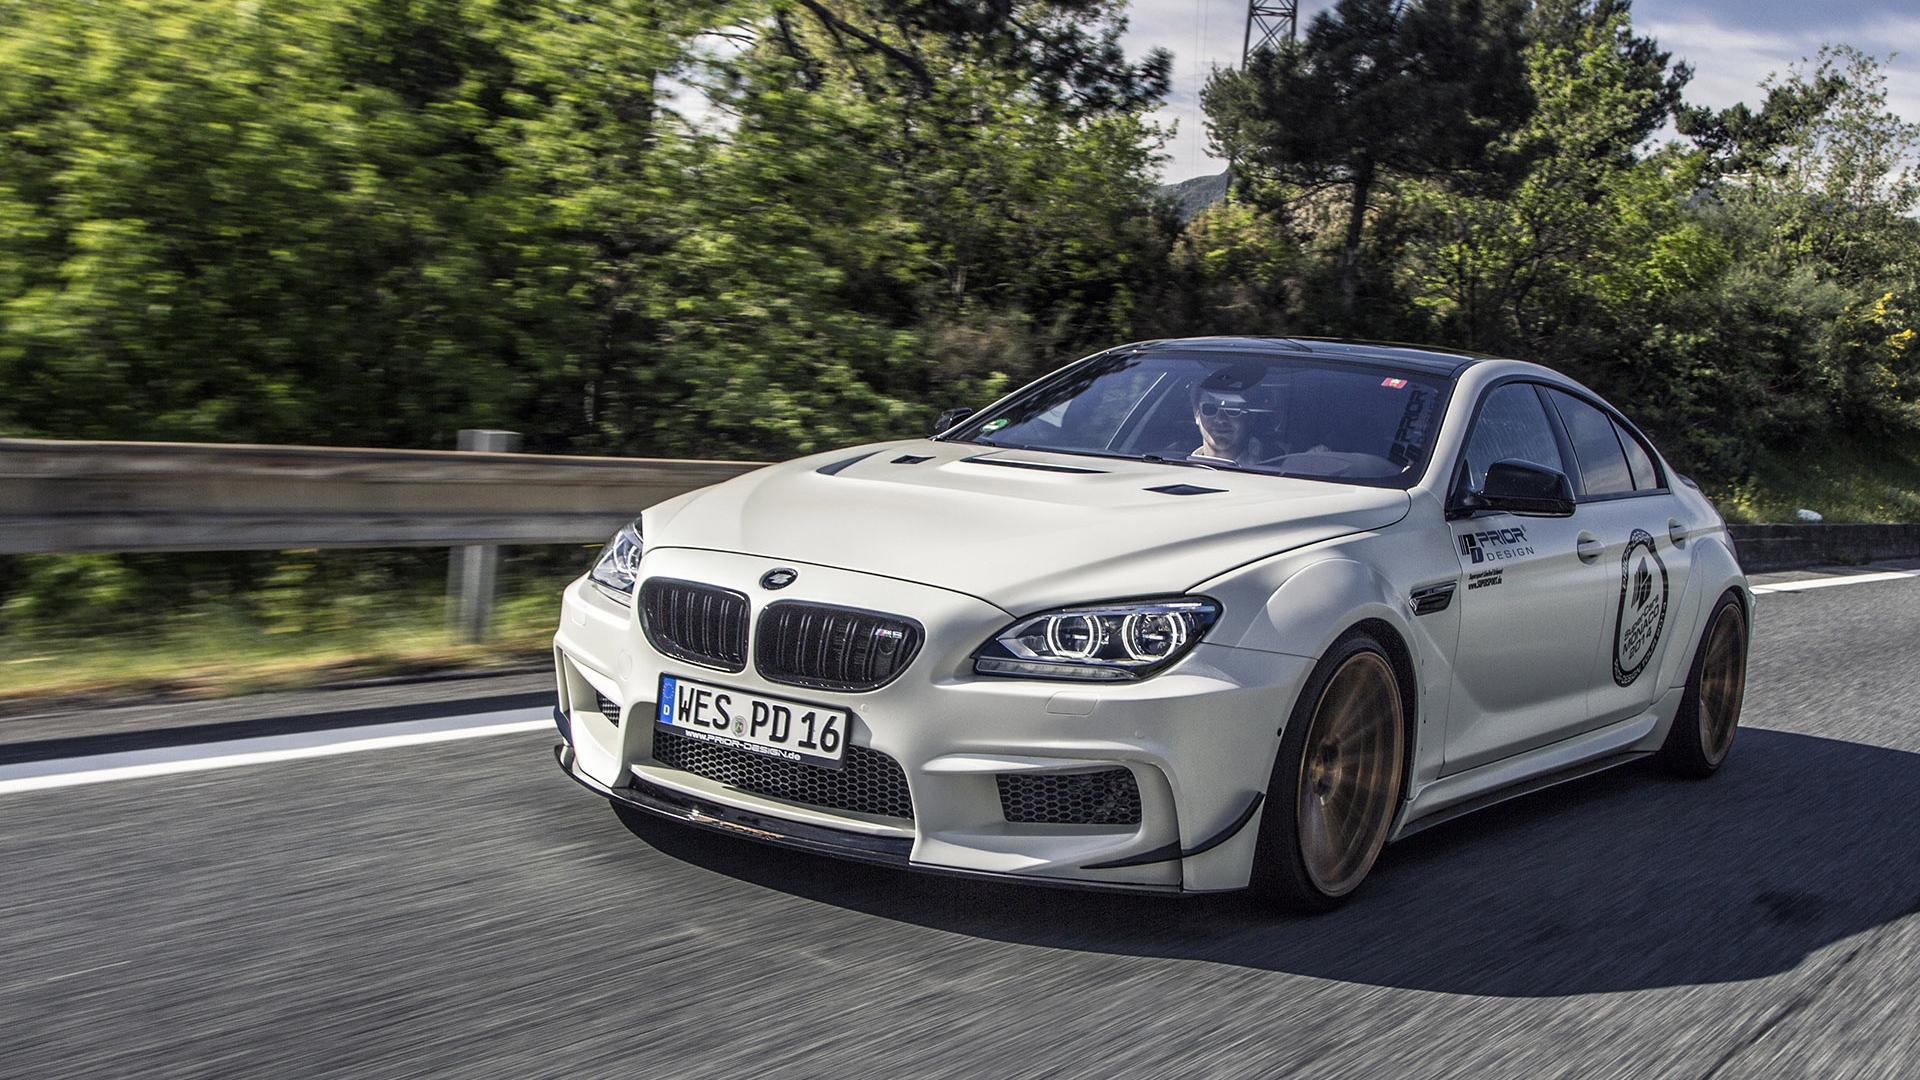 Download Wallpaper 1920x1080 Bmw M6 Gran Coupe Prior Design Tuning Full Hd 1080p Hd Background